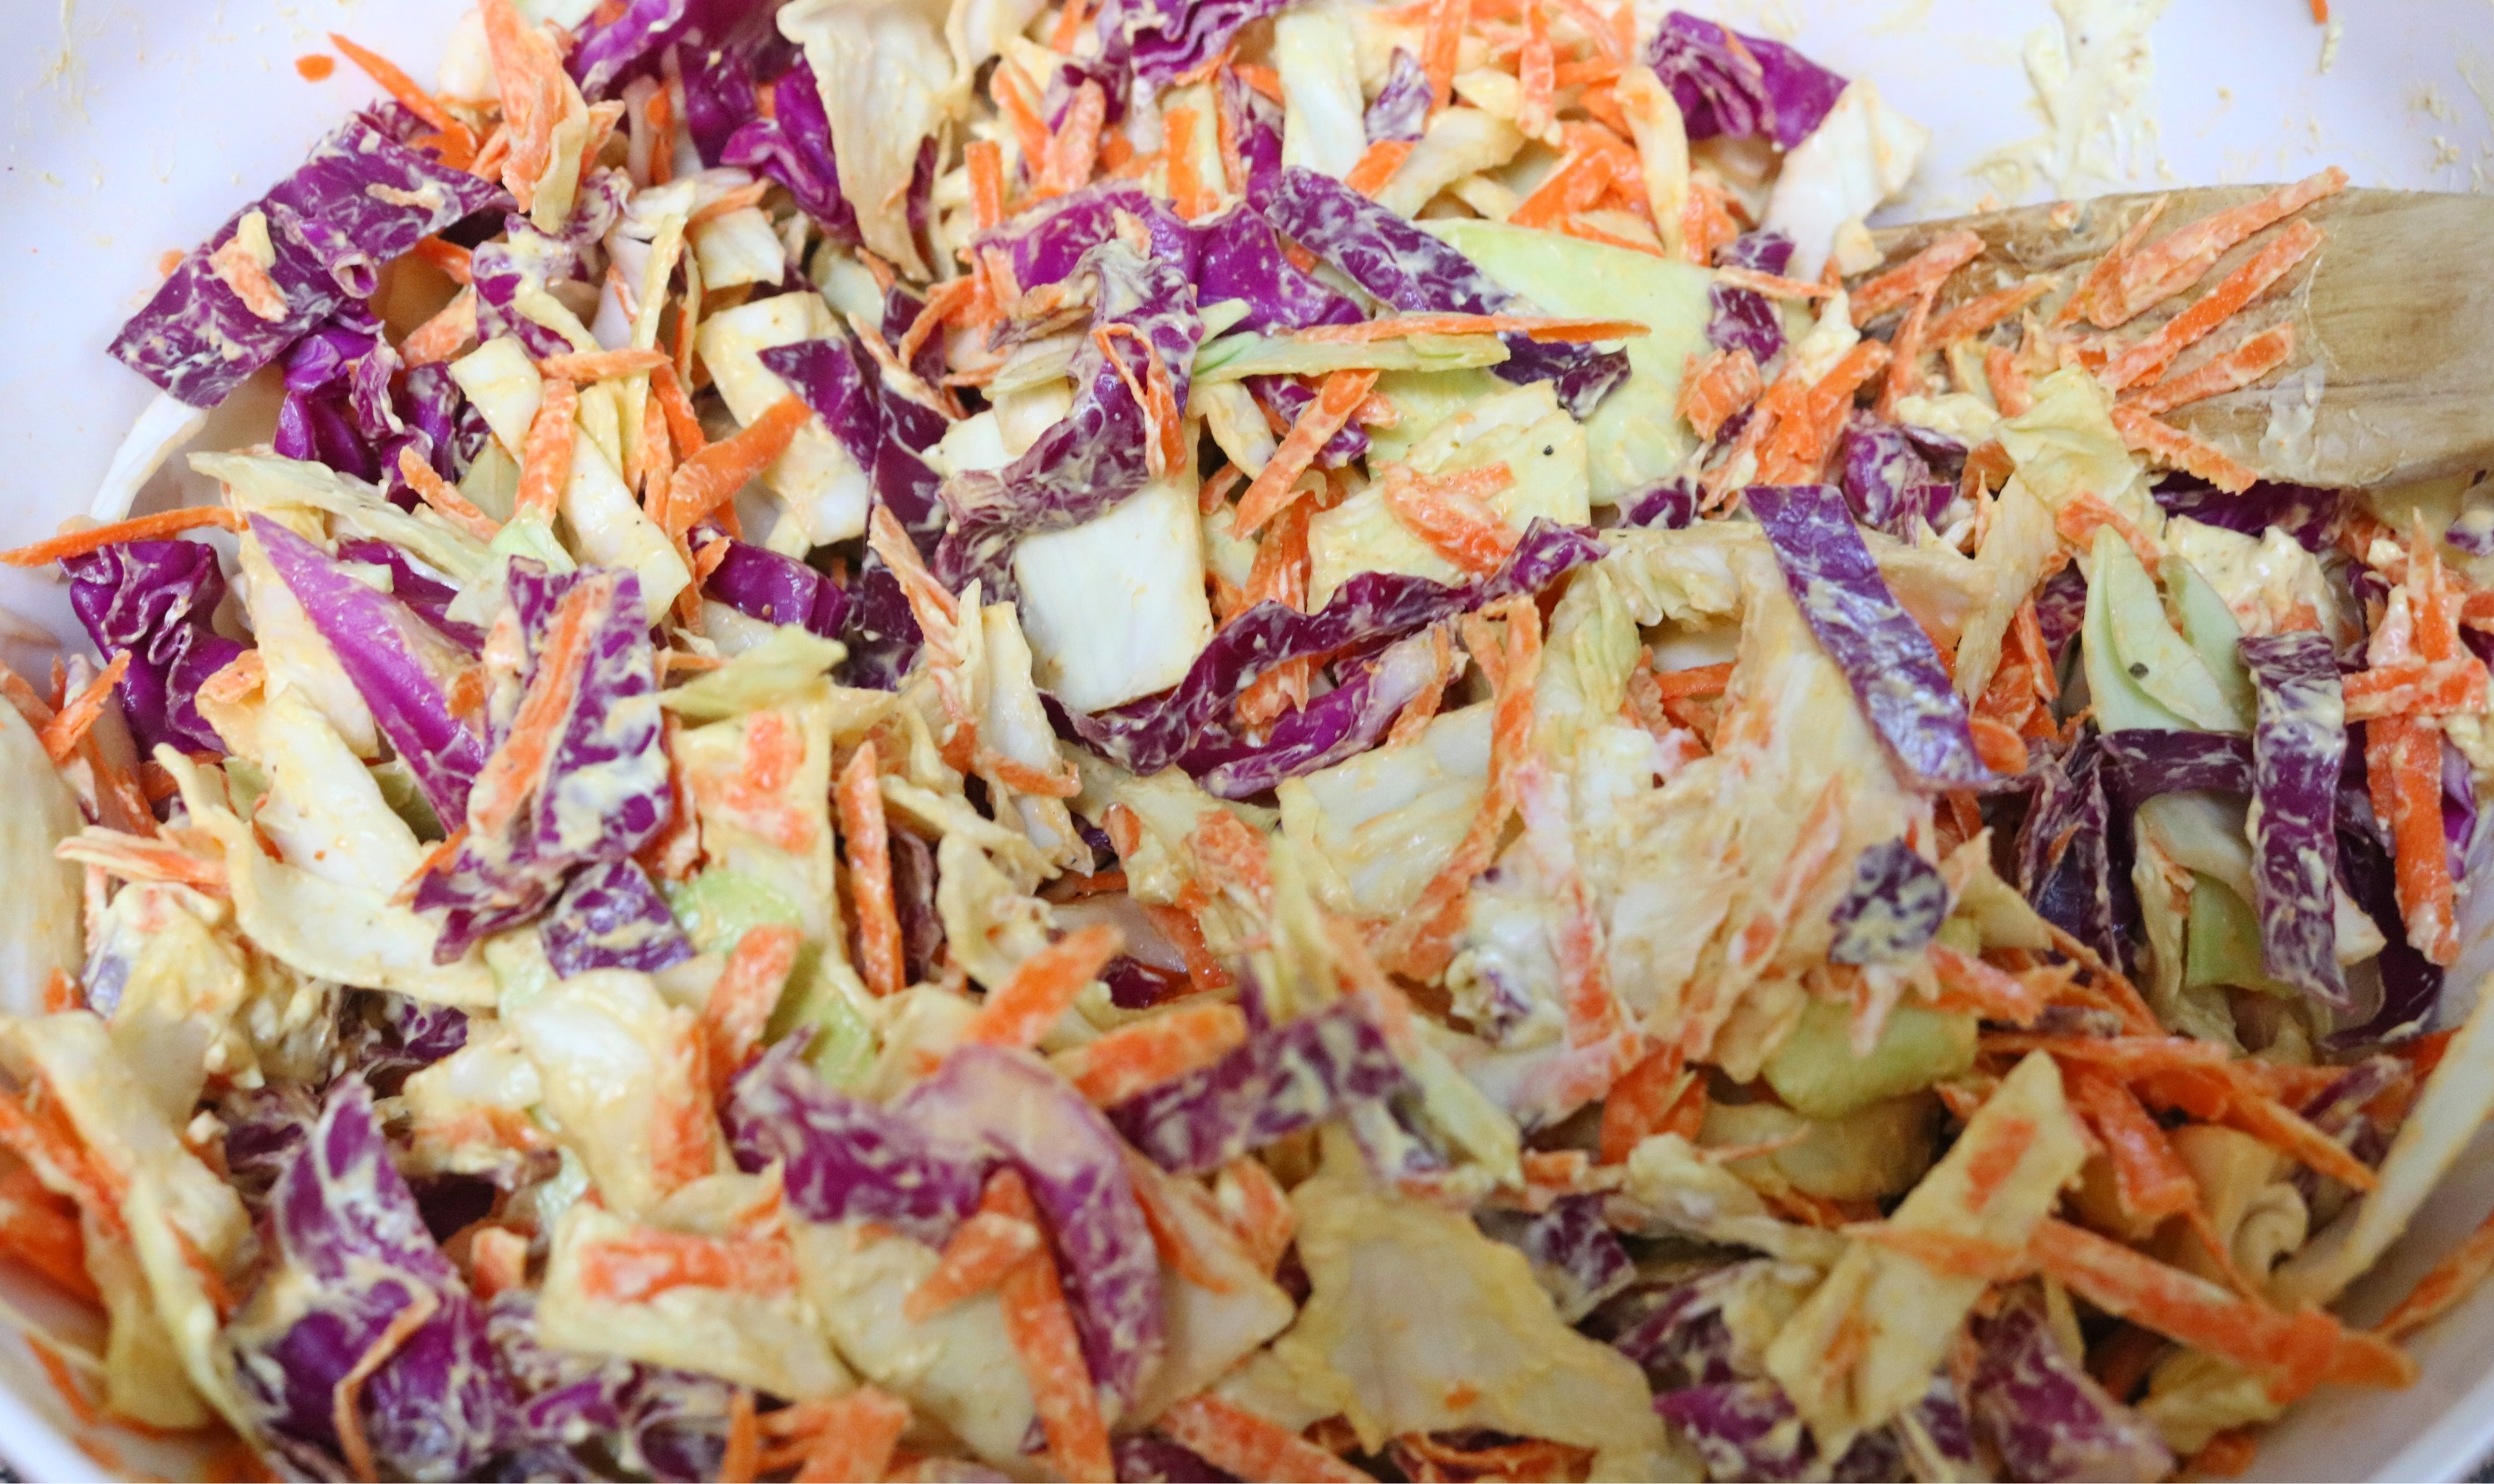 Curried Cranberry Coleslaw